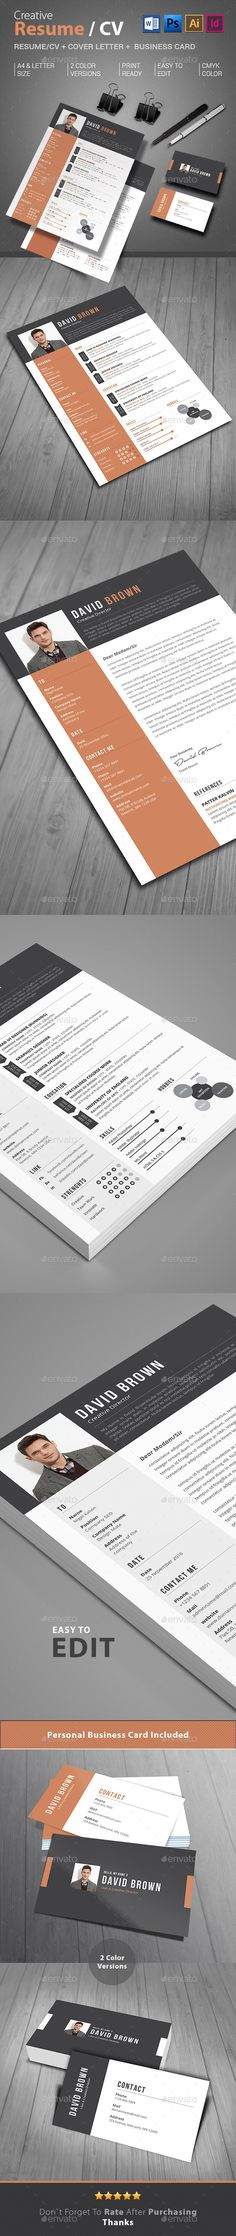 Resume 393 best resumes images on Pinterest